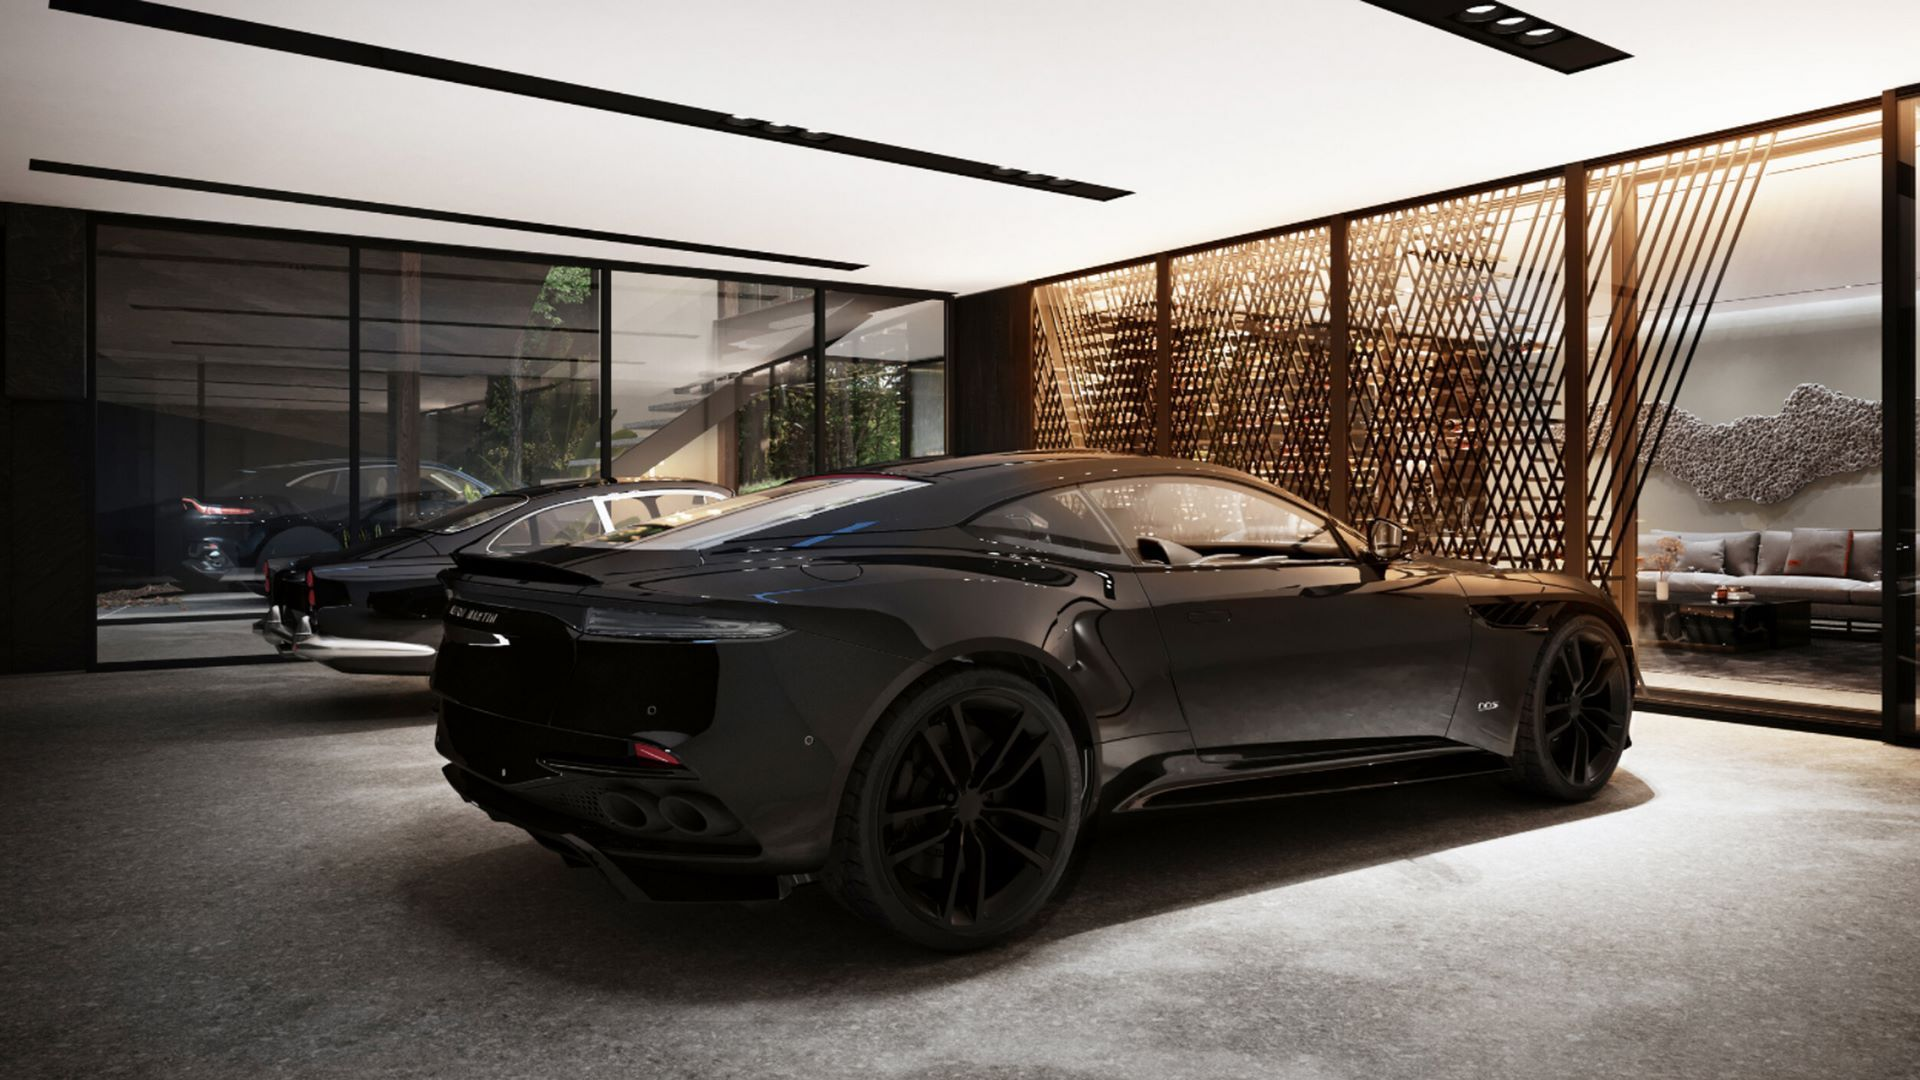 Sylvan-Rock-by-S3-Architecture-and-Aston-Martin-Design-8